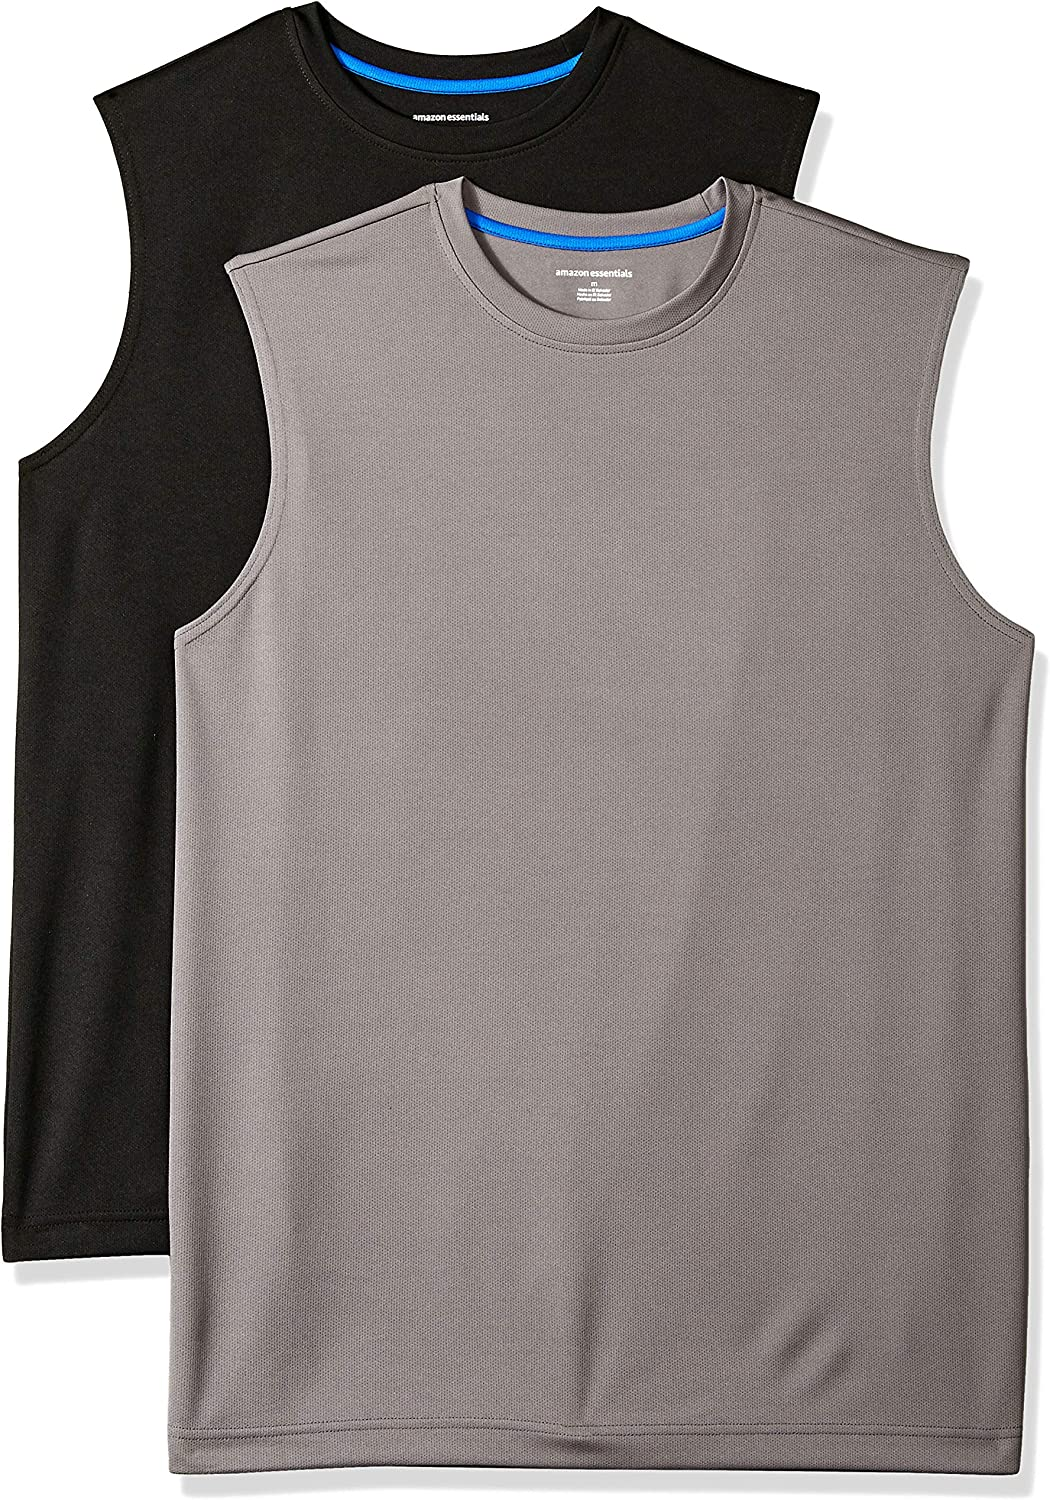 Amazon Essentials Men's 2-Pack Performance Tech Muscle Tank